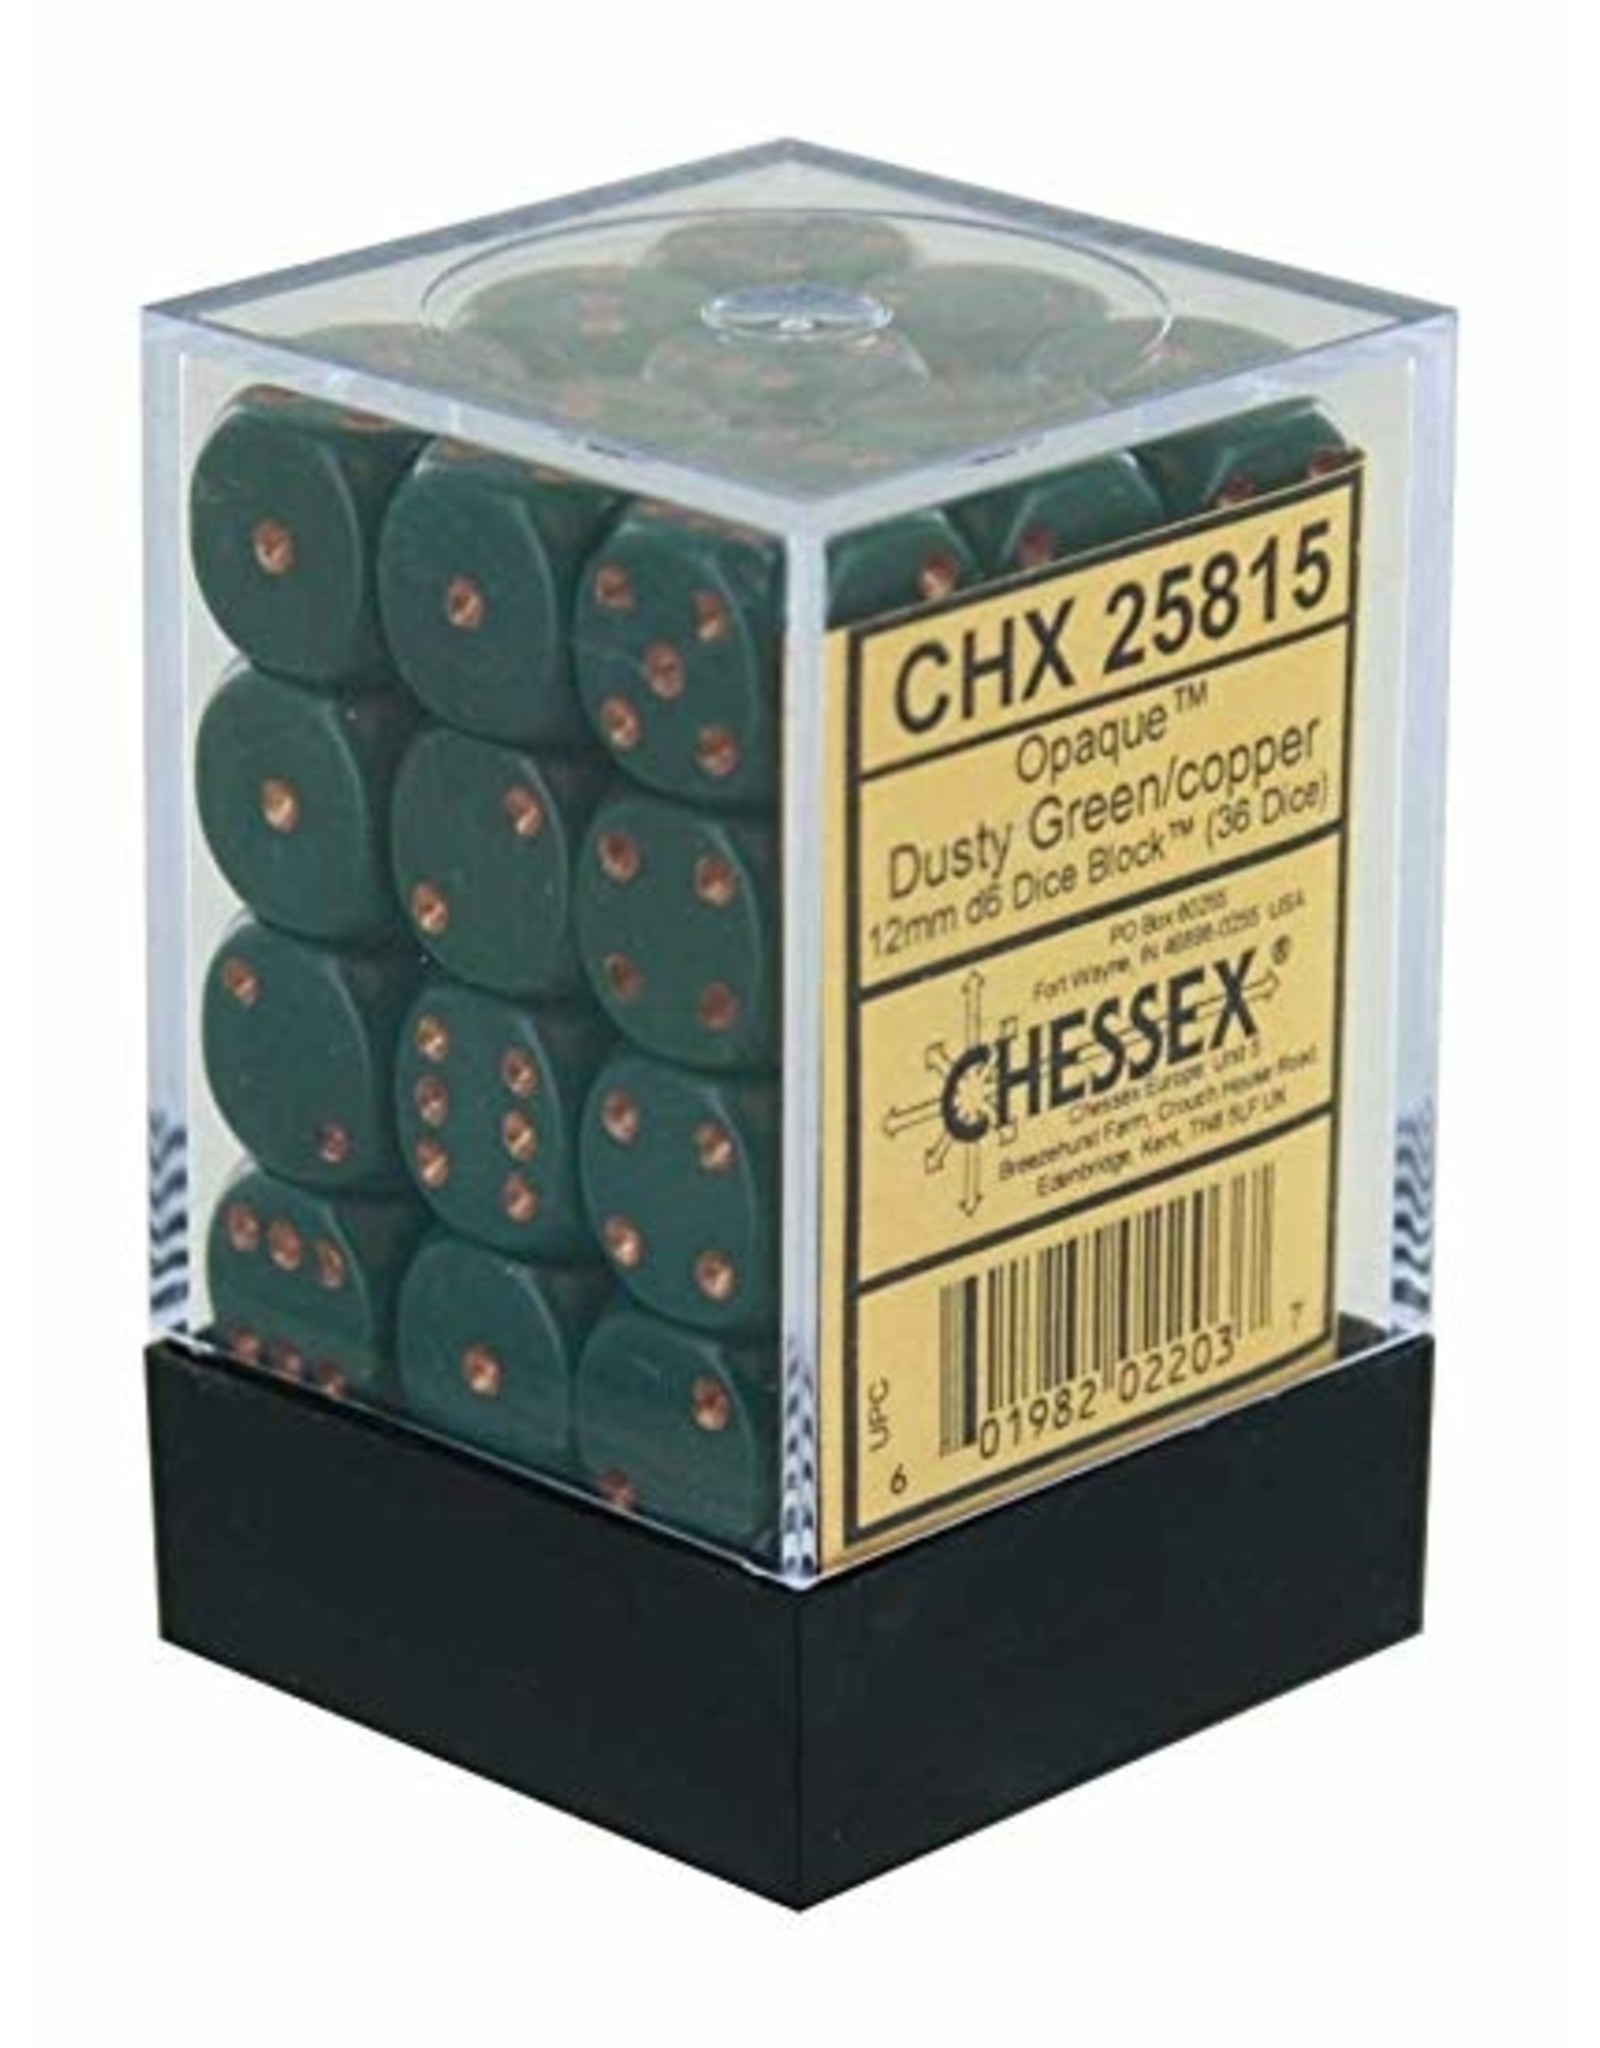 Chessex Opaque Dusty Green copper 12mm